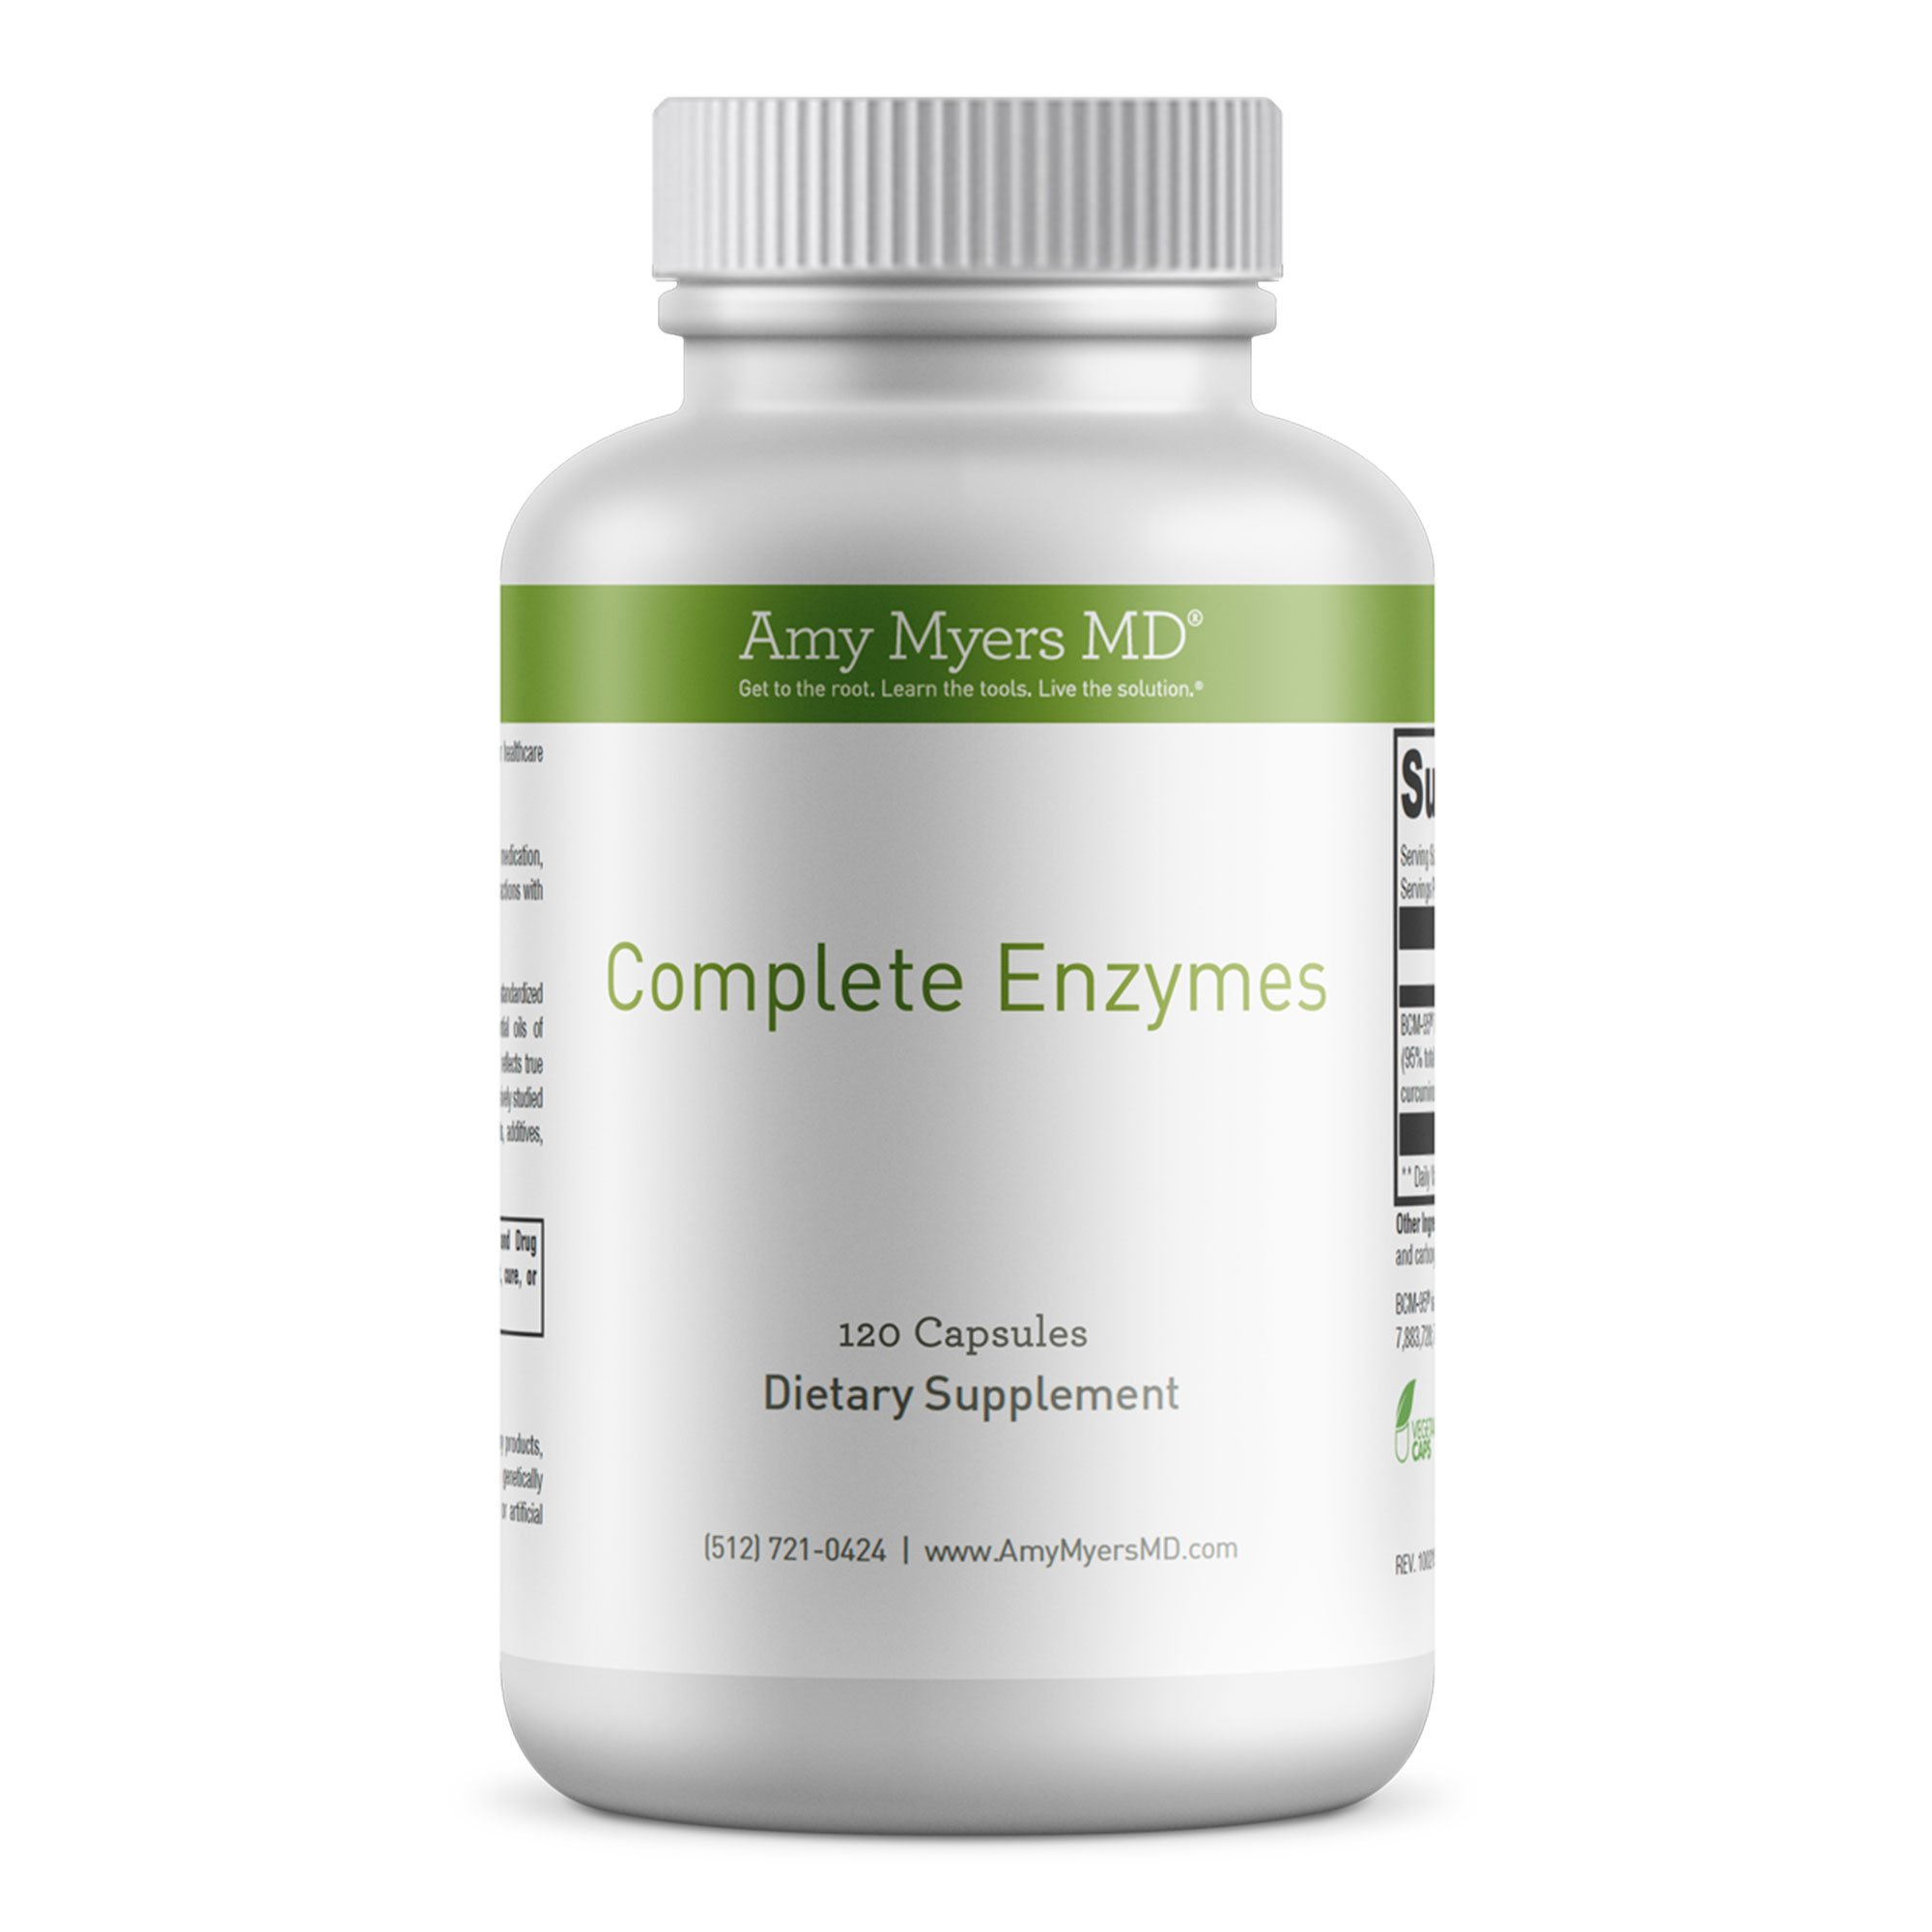 Dr. Amy Myers Digestive Enzymes – 19 Enzymes to Support IBS, Leaky Gut, Bloating, Constipation, Gluten Exposure - Amylase, Lactase, Lipase, Alkaline Protease, Sucrase + More – 120 Vegetarian Capsules